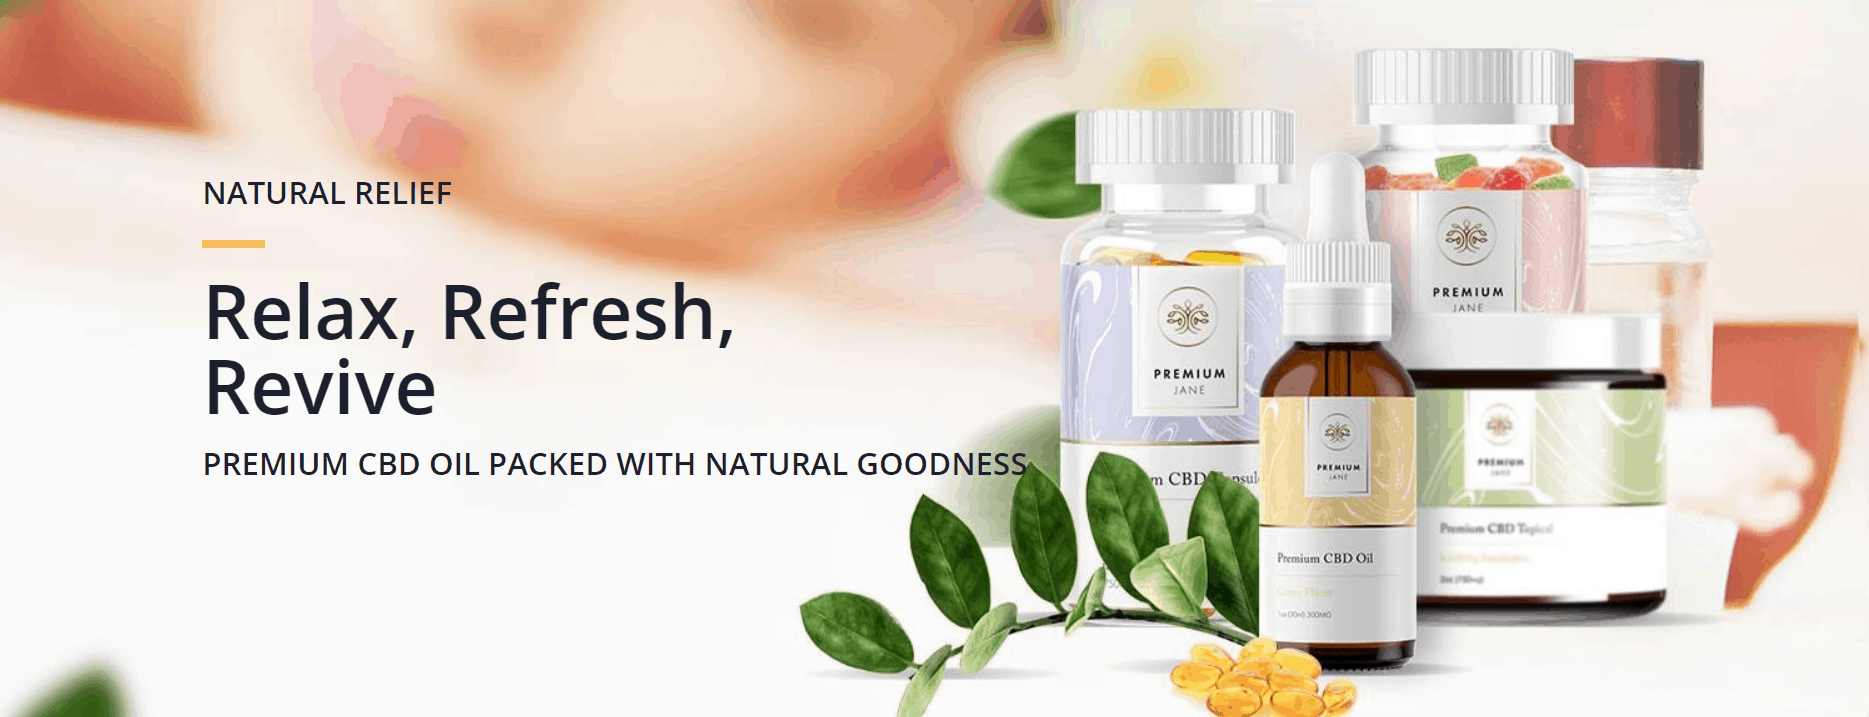 Naturally Good Product By Premium Jane